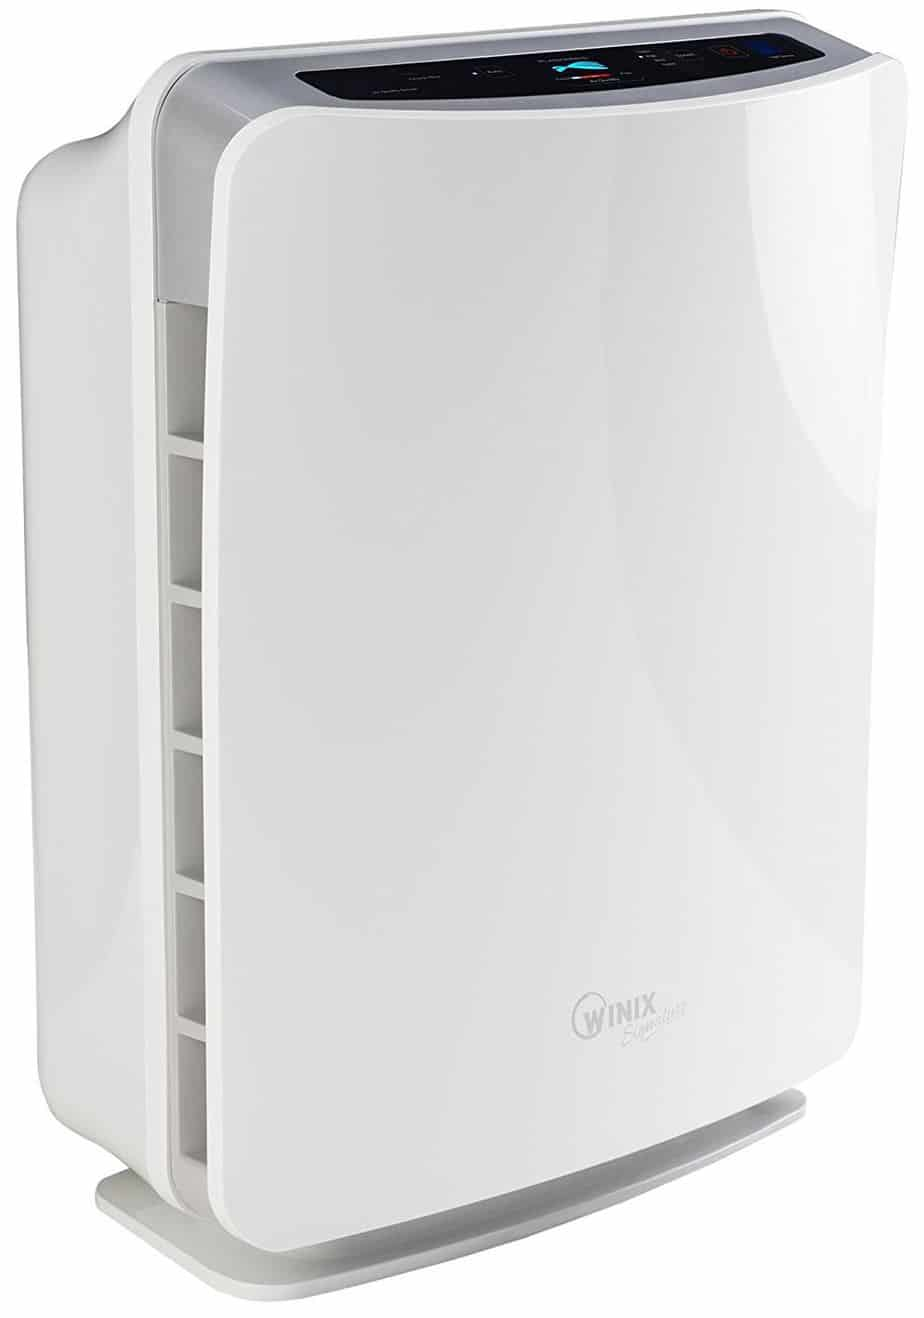 WINIX U300 True HEPA Air Purifier with AOC Washable Carbon Filter, 30 sqm, White